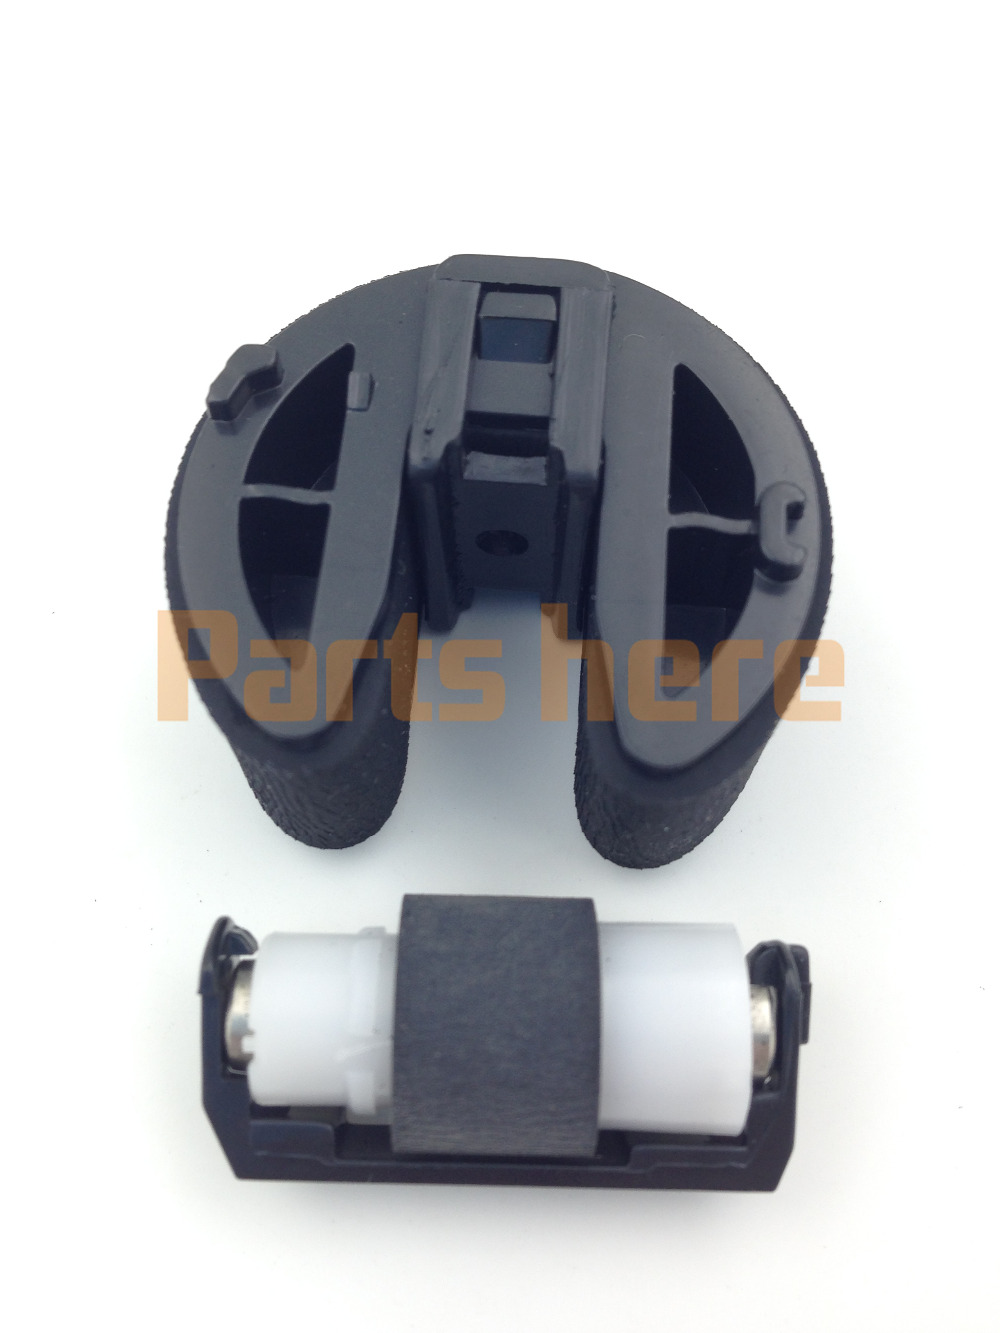 CC430-67901 RM1-4425 RM1-8765 RM1-4426 Pickup Roller Assembly for HP CM1312 CM2320 CP2025 CP1215 CP1515 CP1518 CM1415 CP1525 fred perry fred perry m8263 102